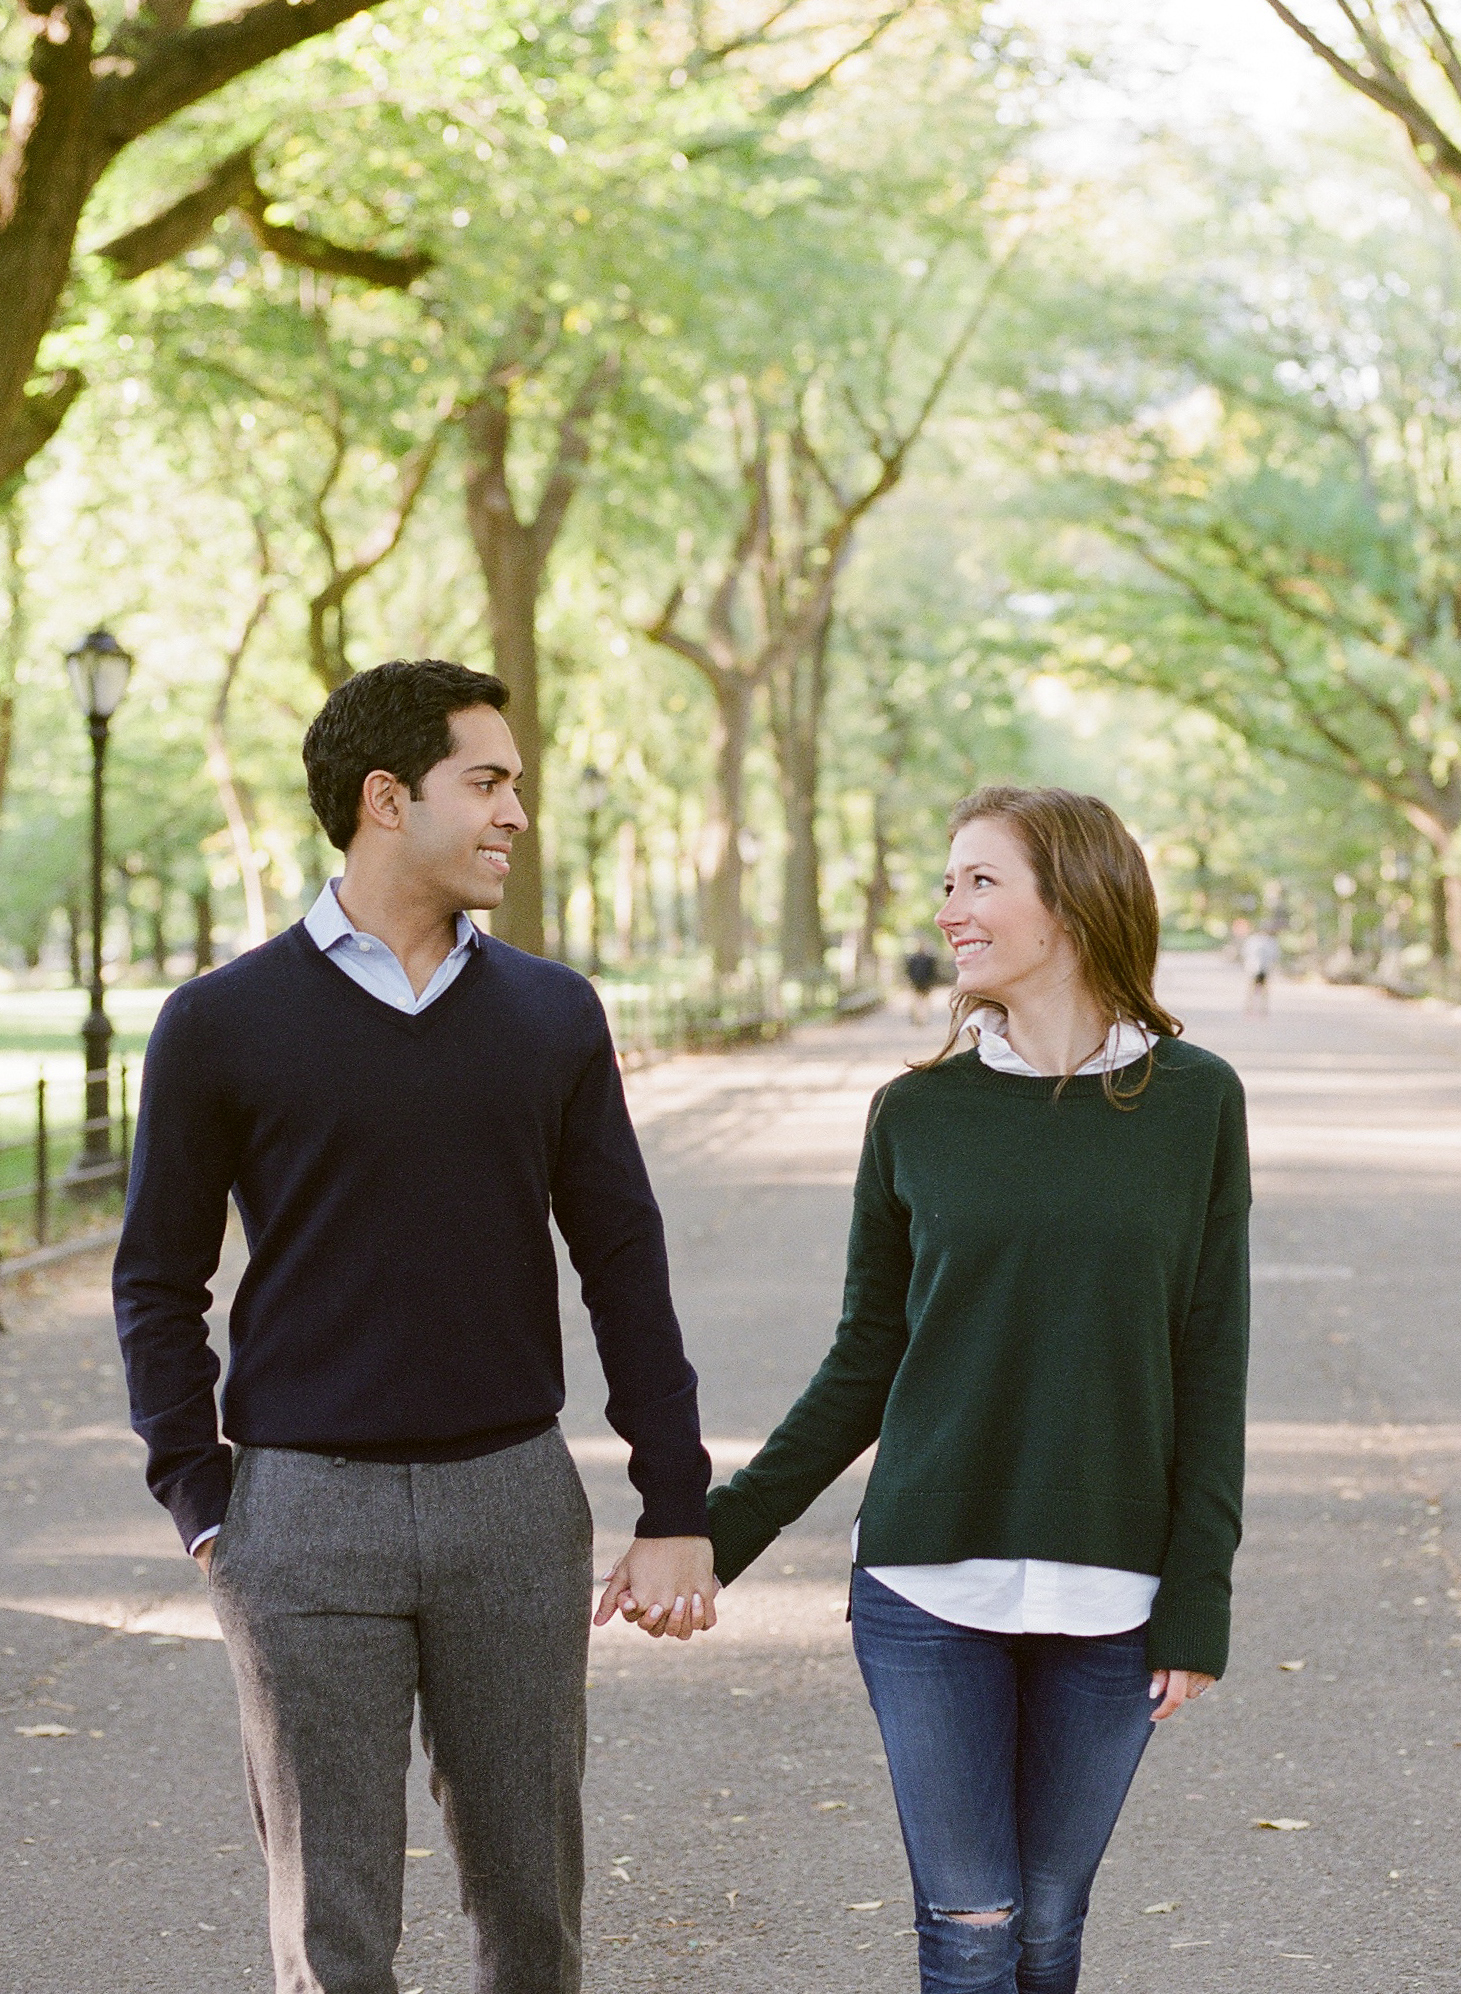 Engagement session at the Mall in Central Park